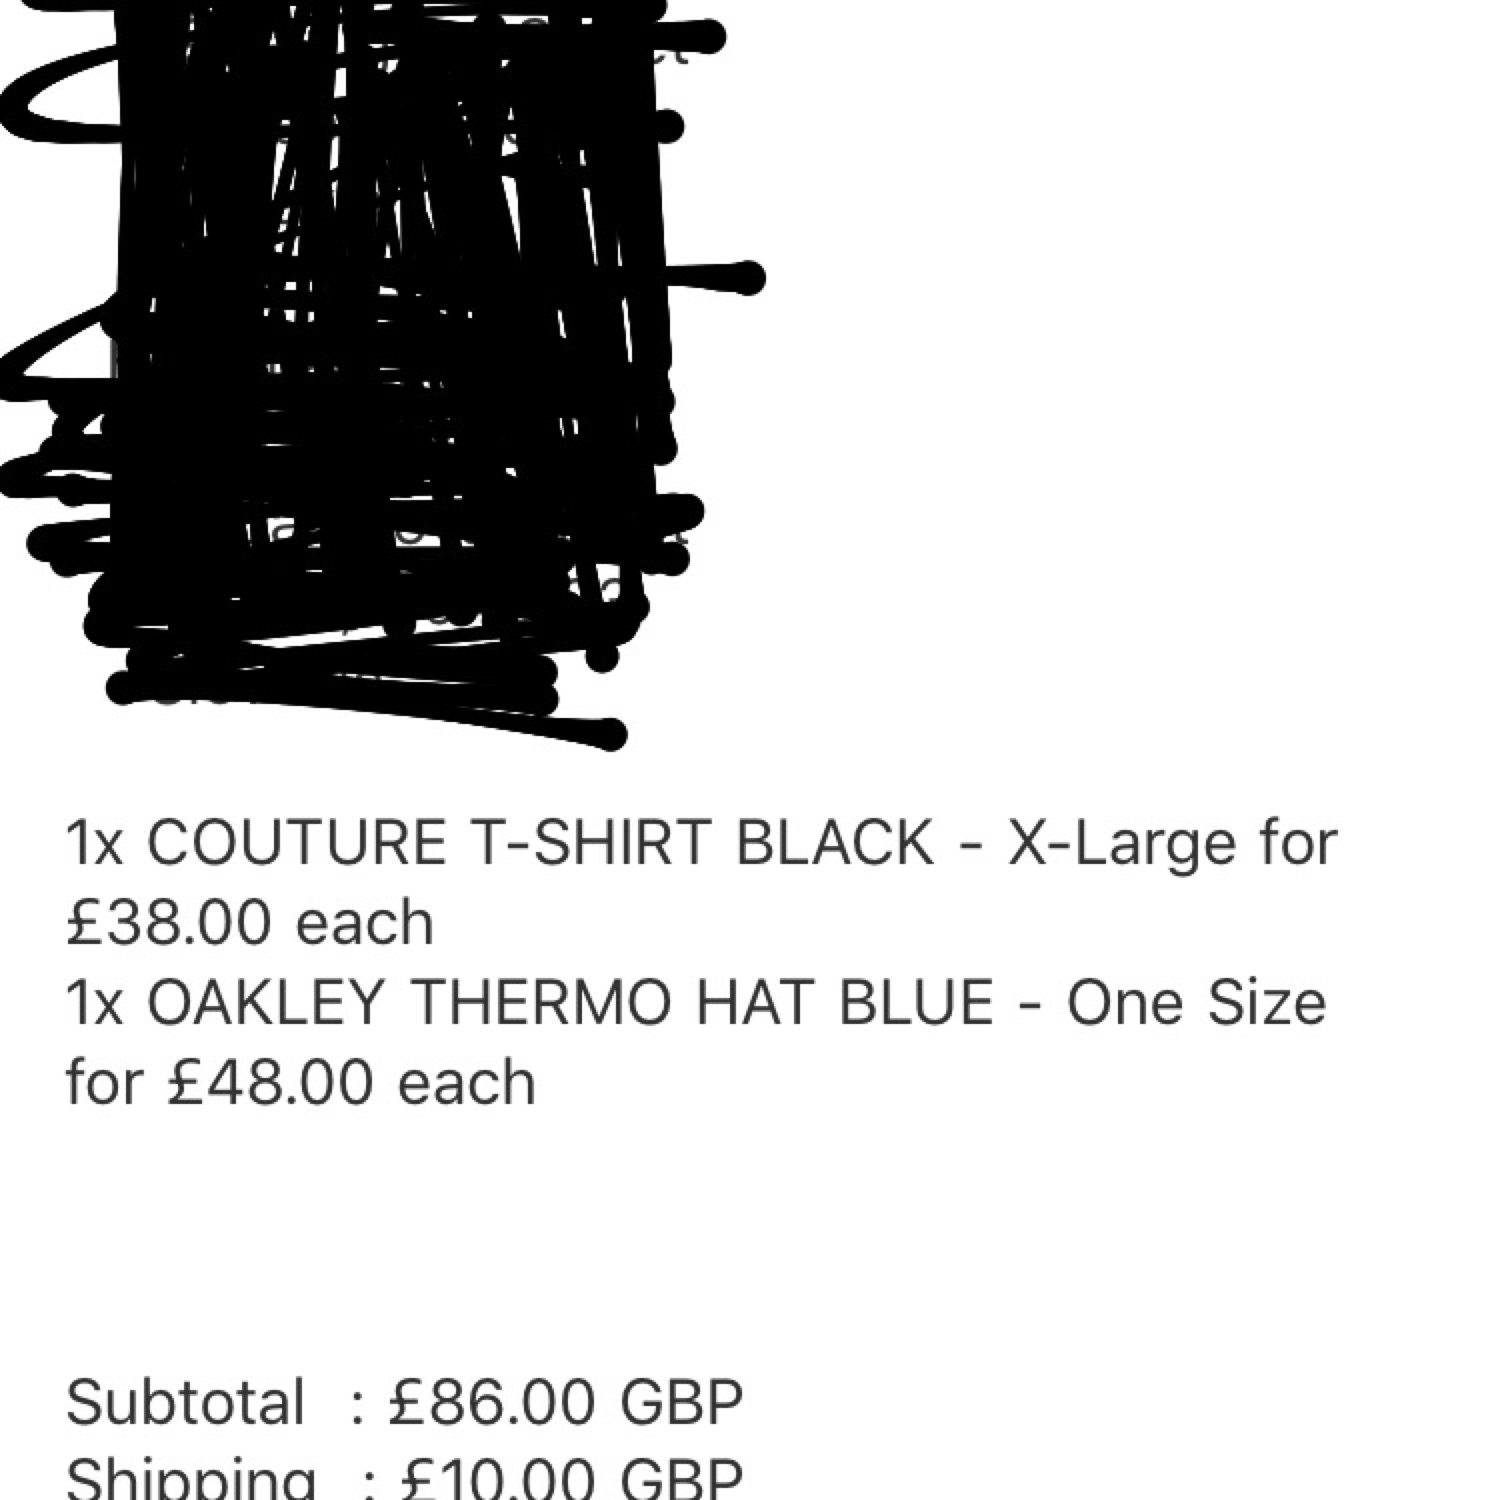 dd65df20 Palace Oakley Thermo Hat Blue